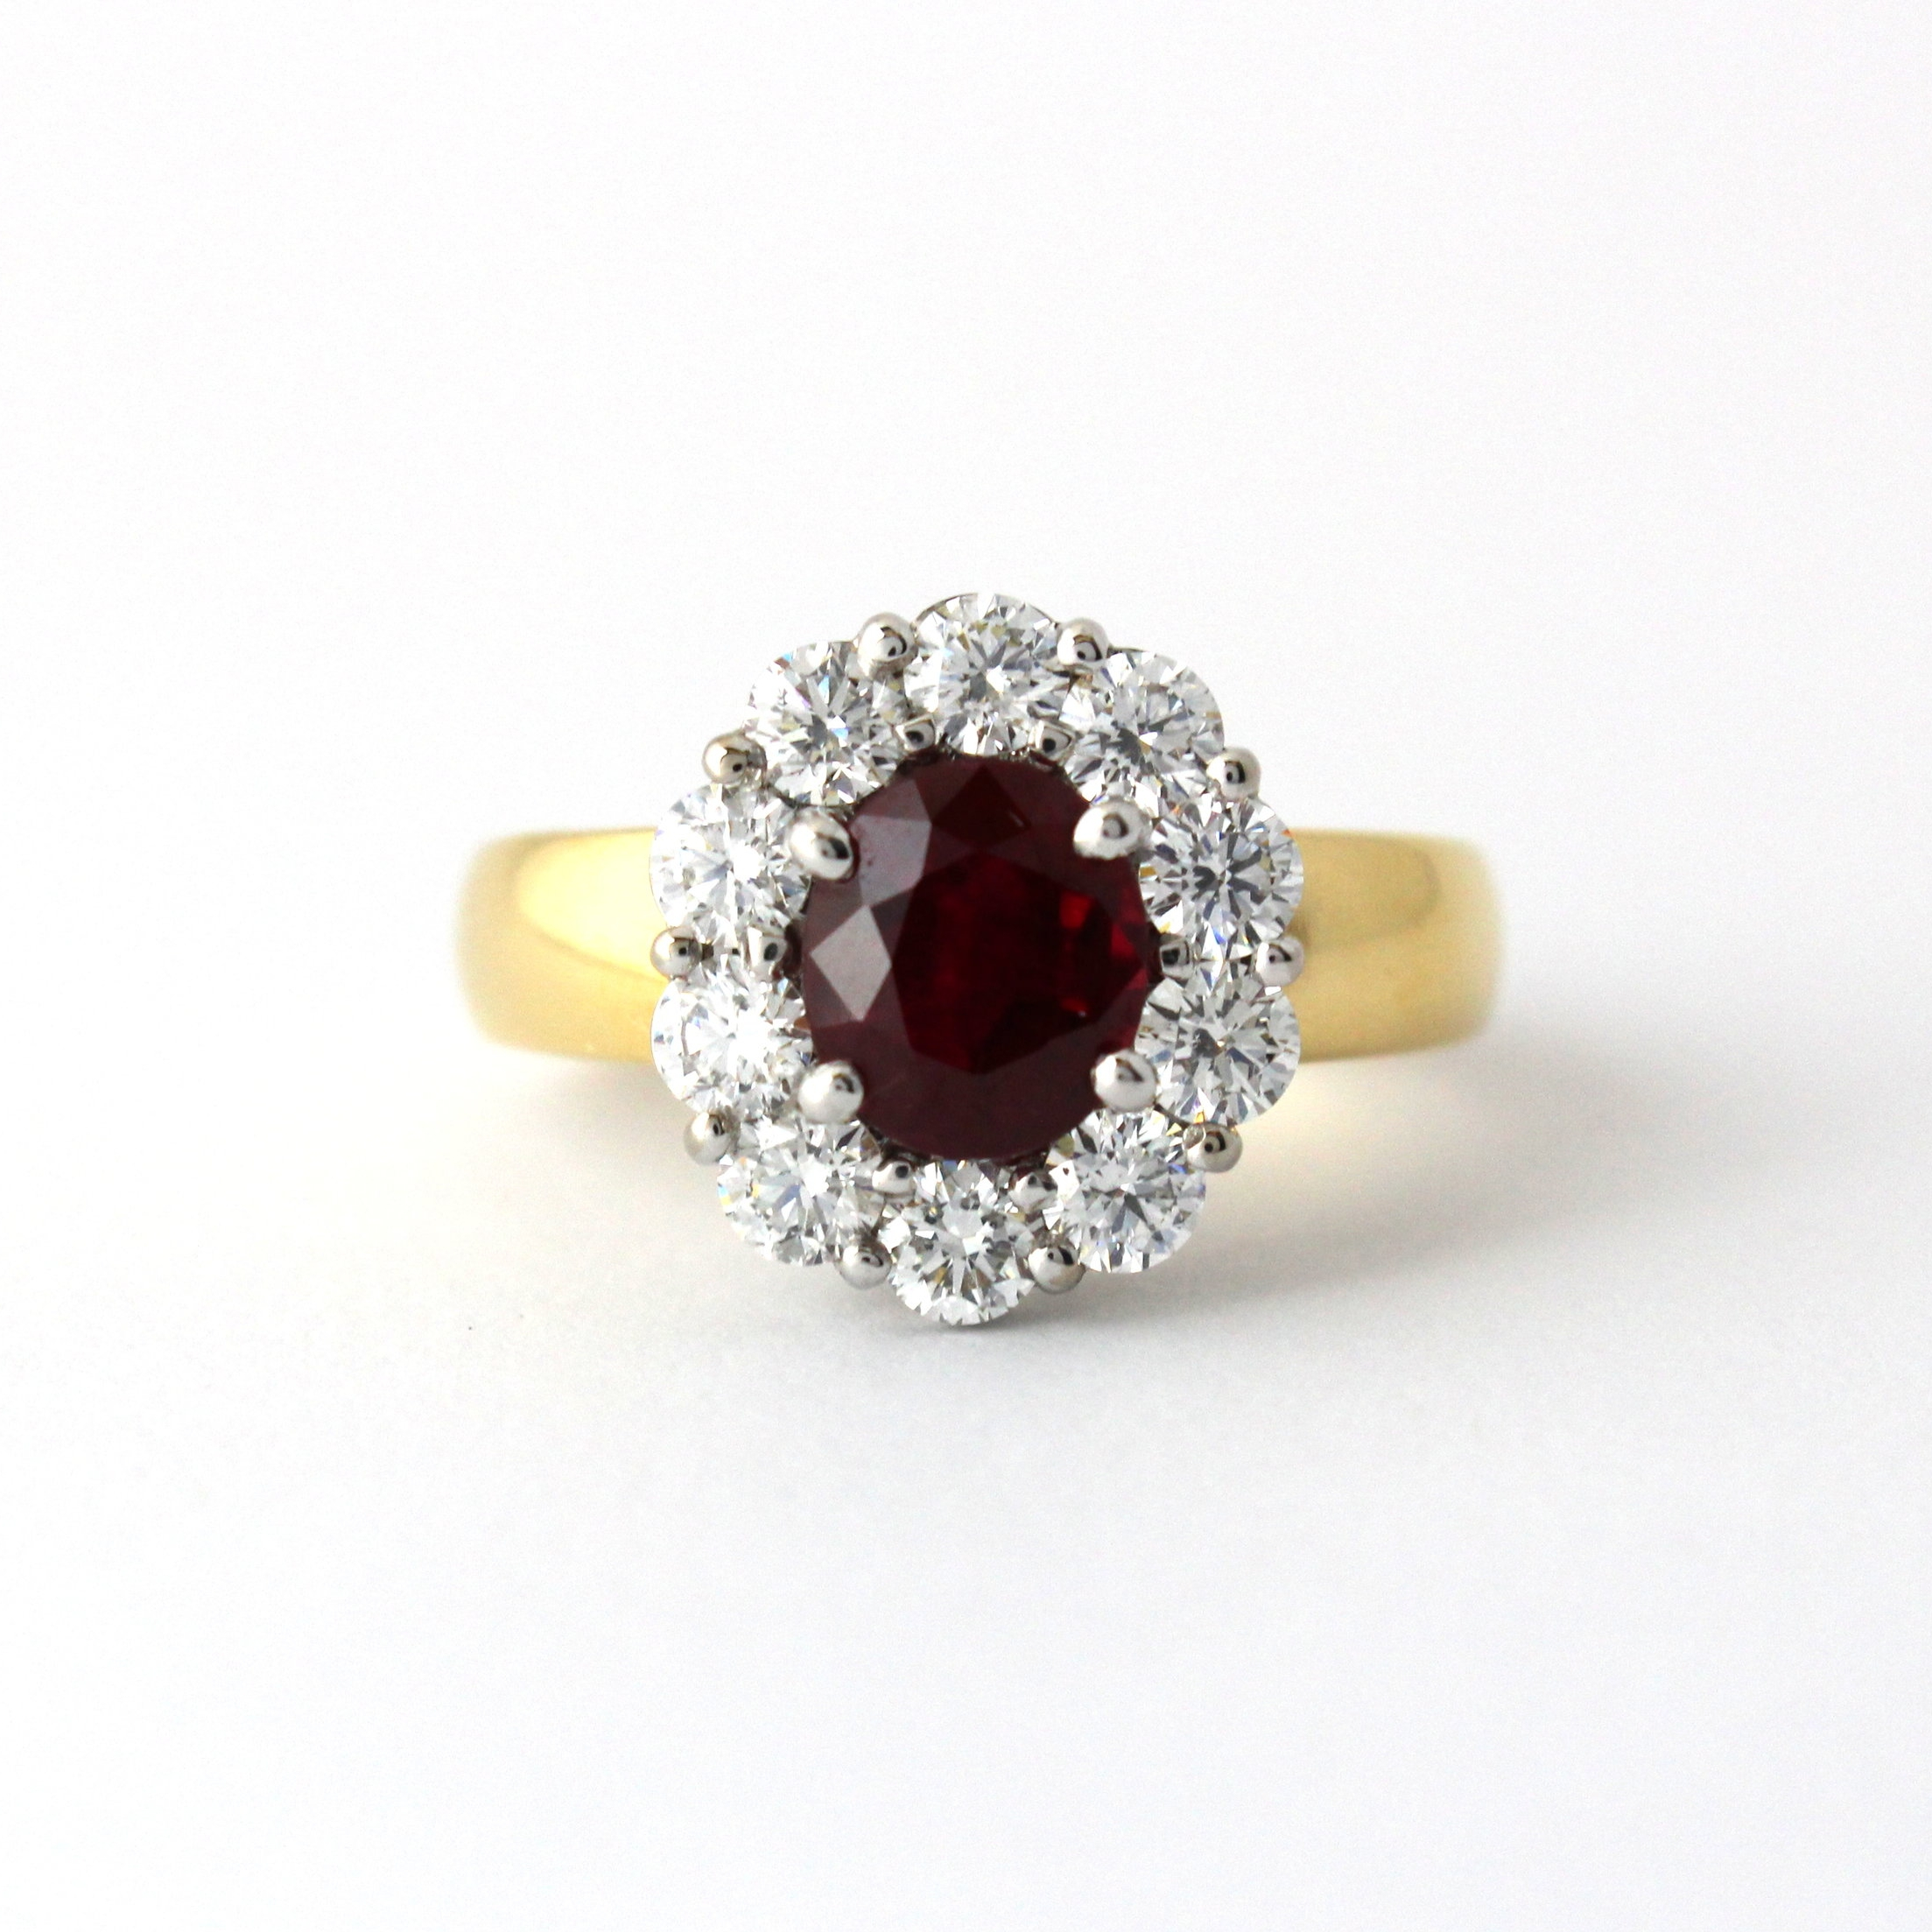 Ruby with diamond halo in yellow and white gold ring.